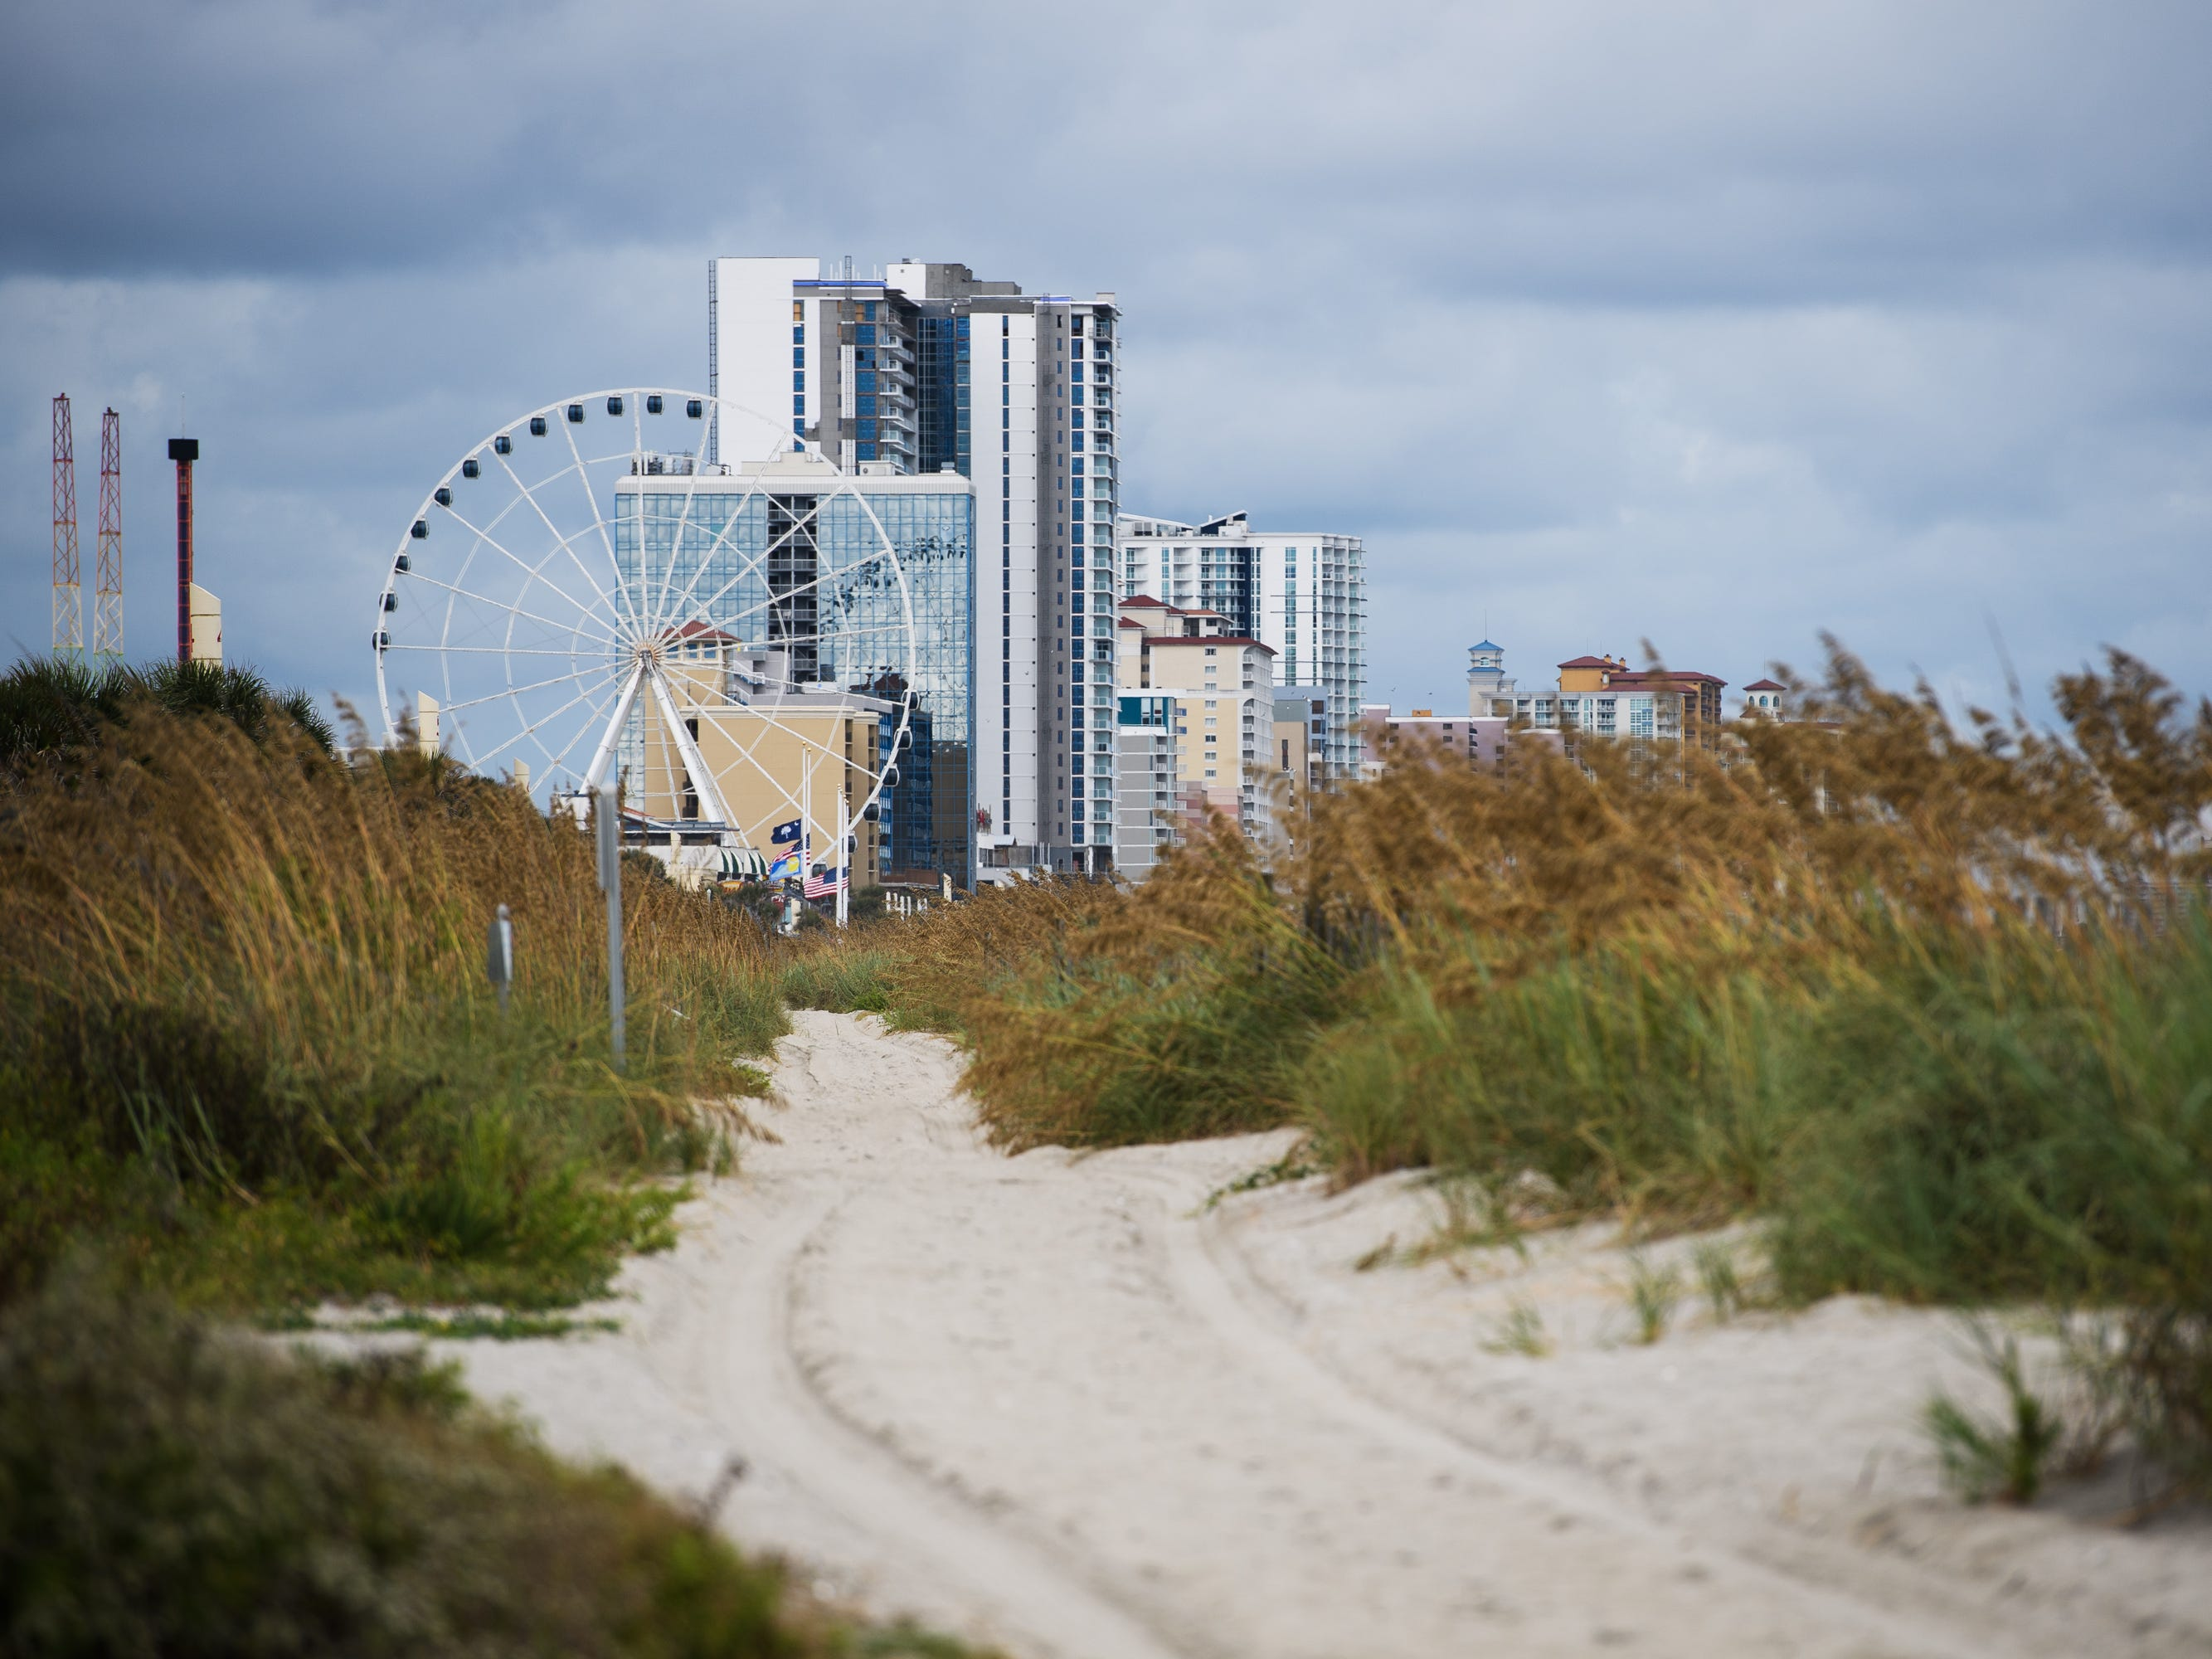 The SkyWheel and various high rises in Myrtle Beach are visible at the end of a path cut through beach grass and sand dunes along the shore on Tuesday, Sept. 11, 2018.